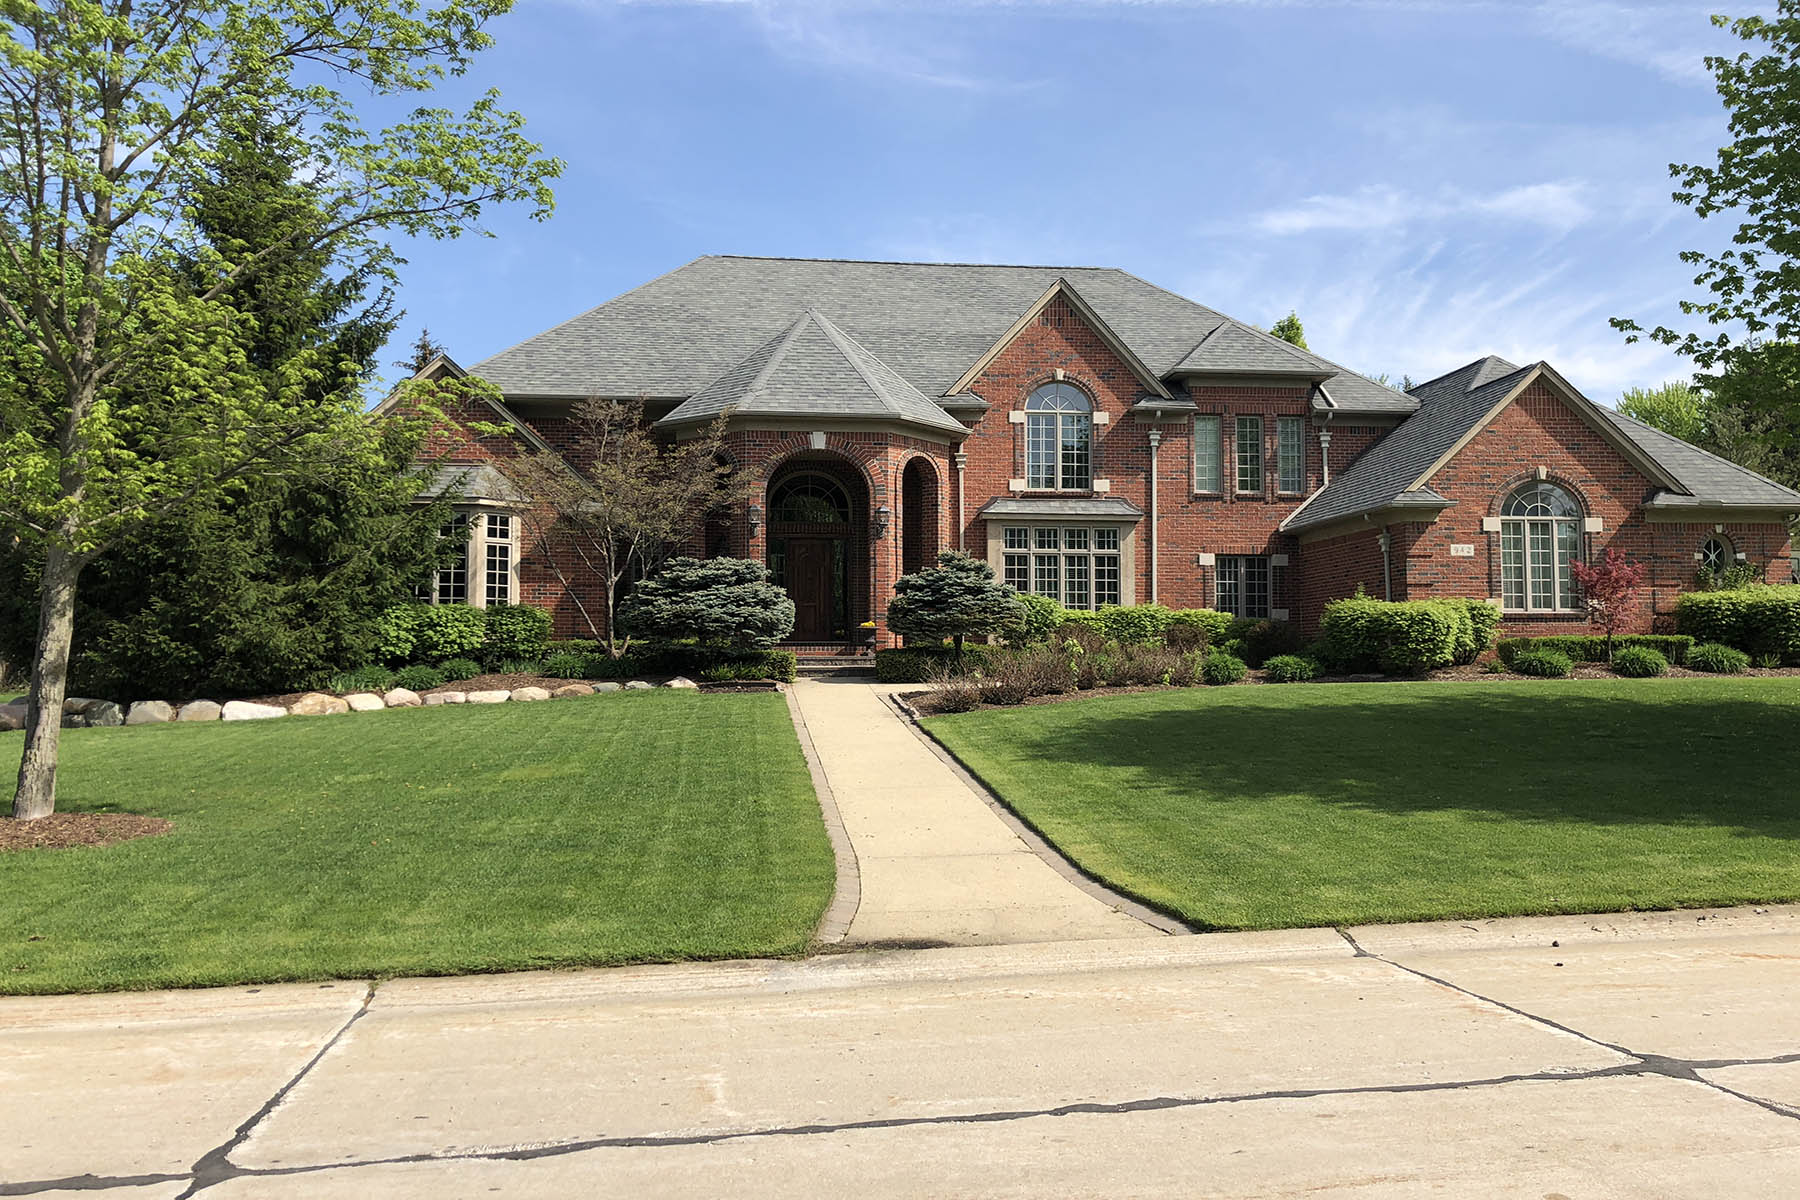 Single Family Homes for Sale at 942 Bloomfield Knoll Drive Bloomfield, Michigan 48304 United States